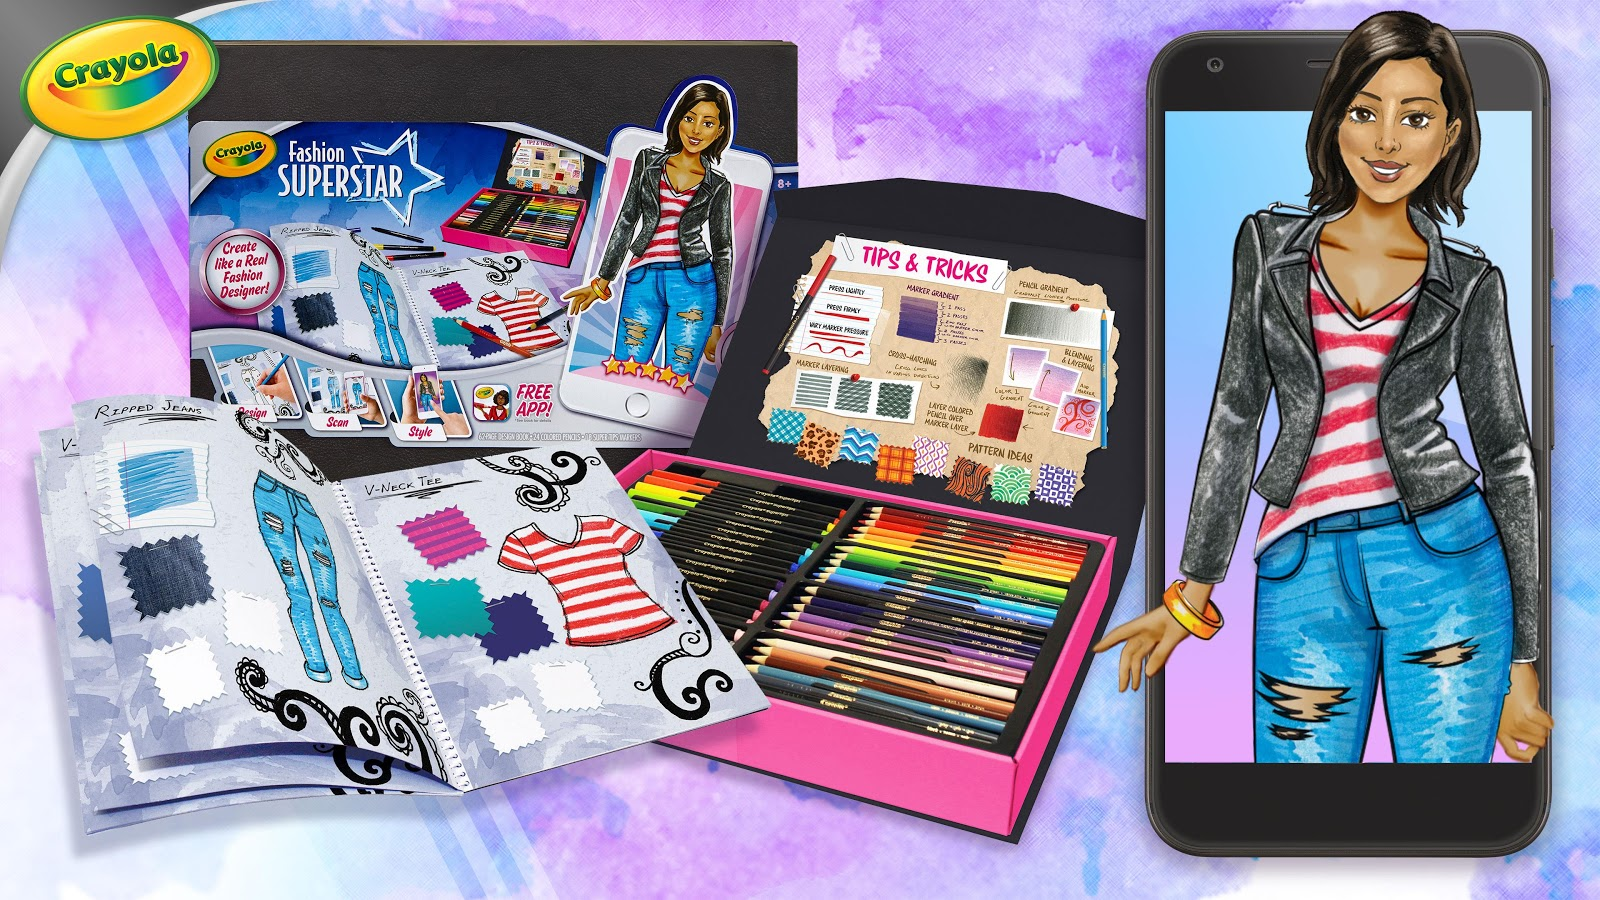 Crayola Fashion Superstar Android Apps On Google Play